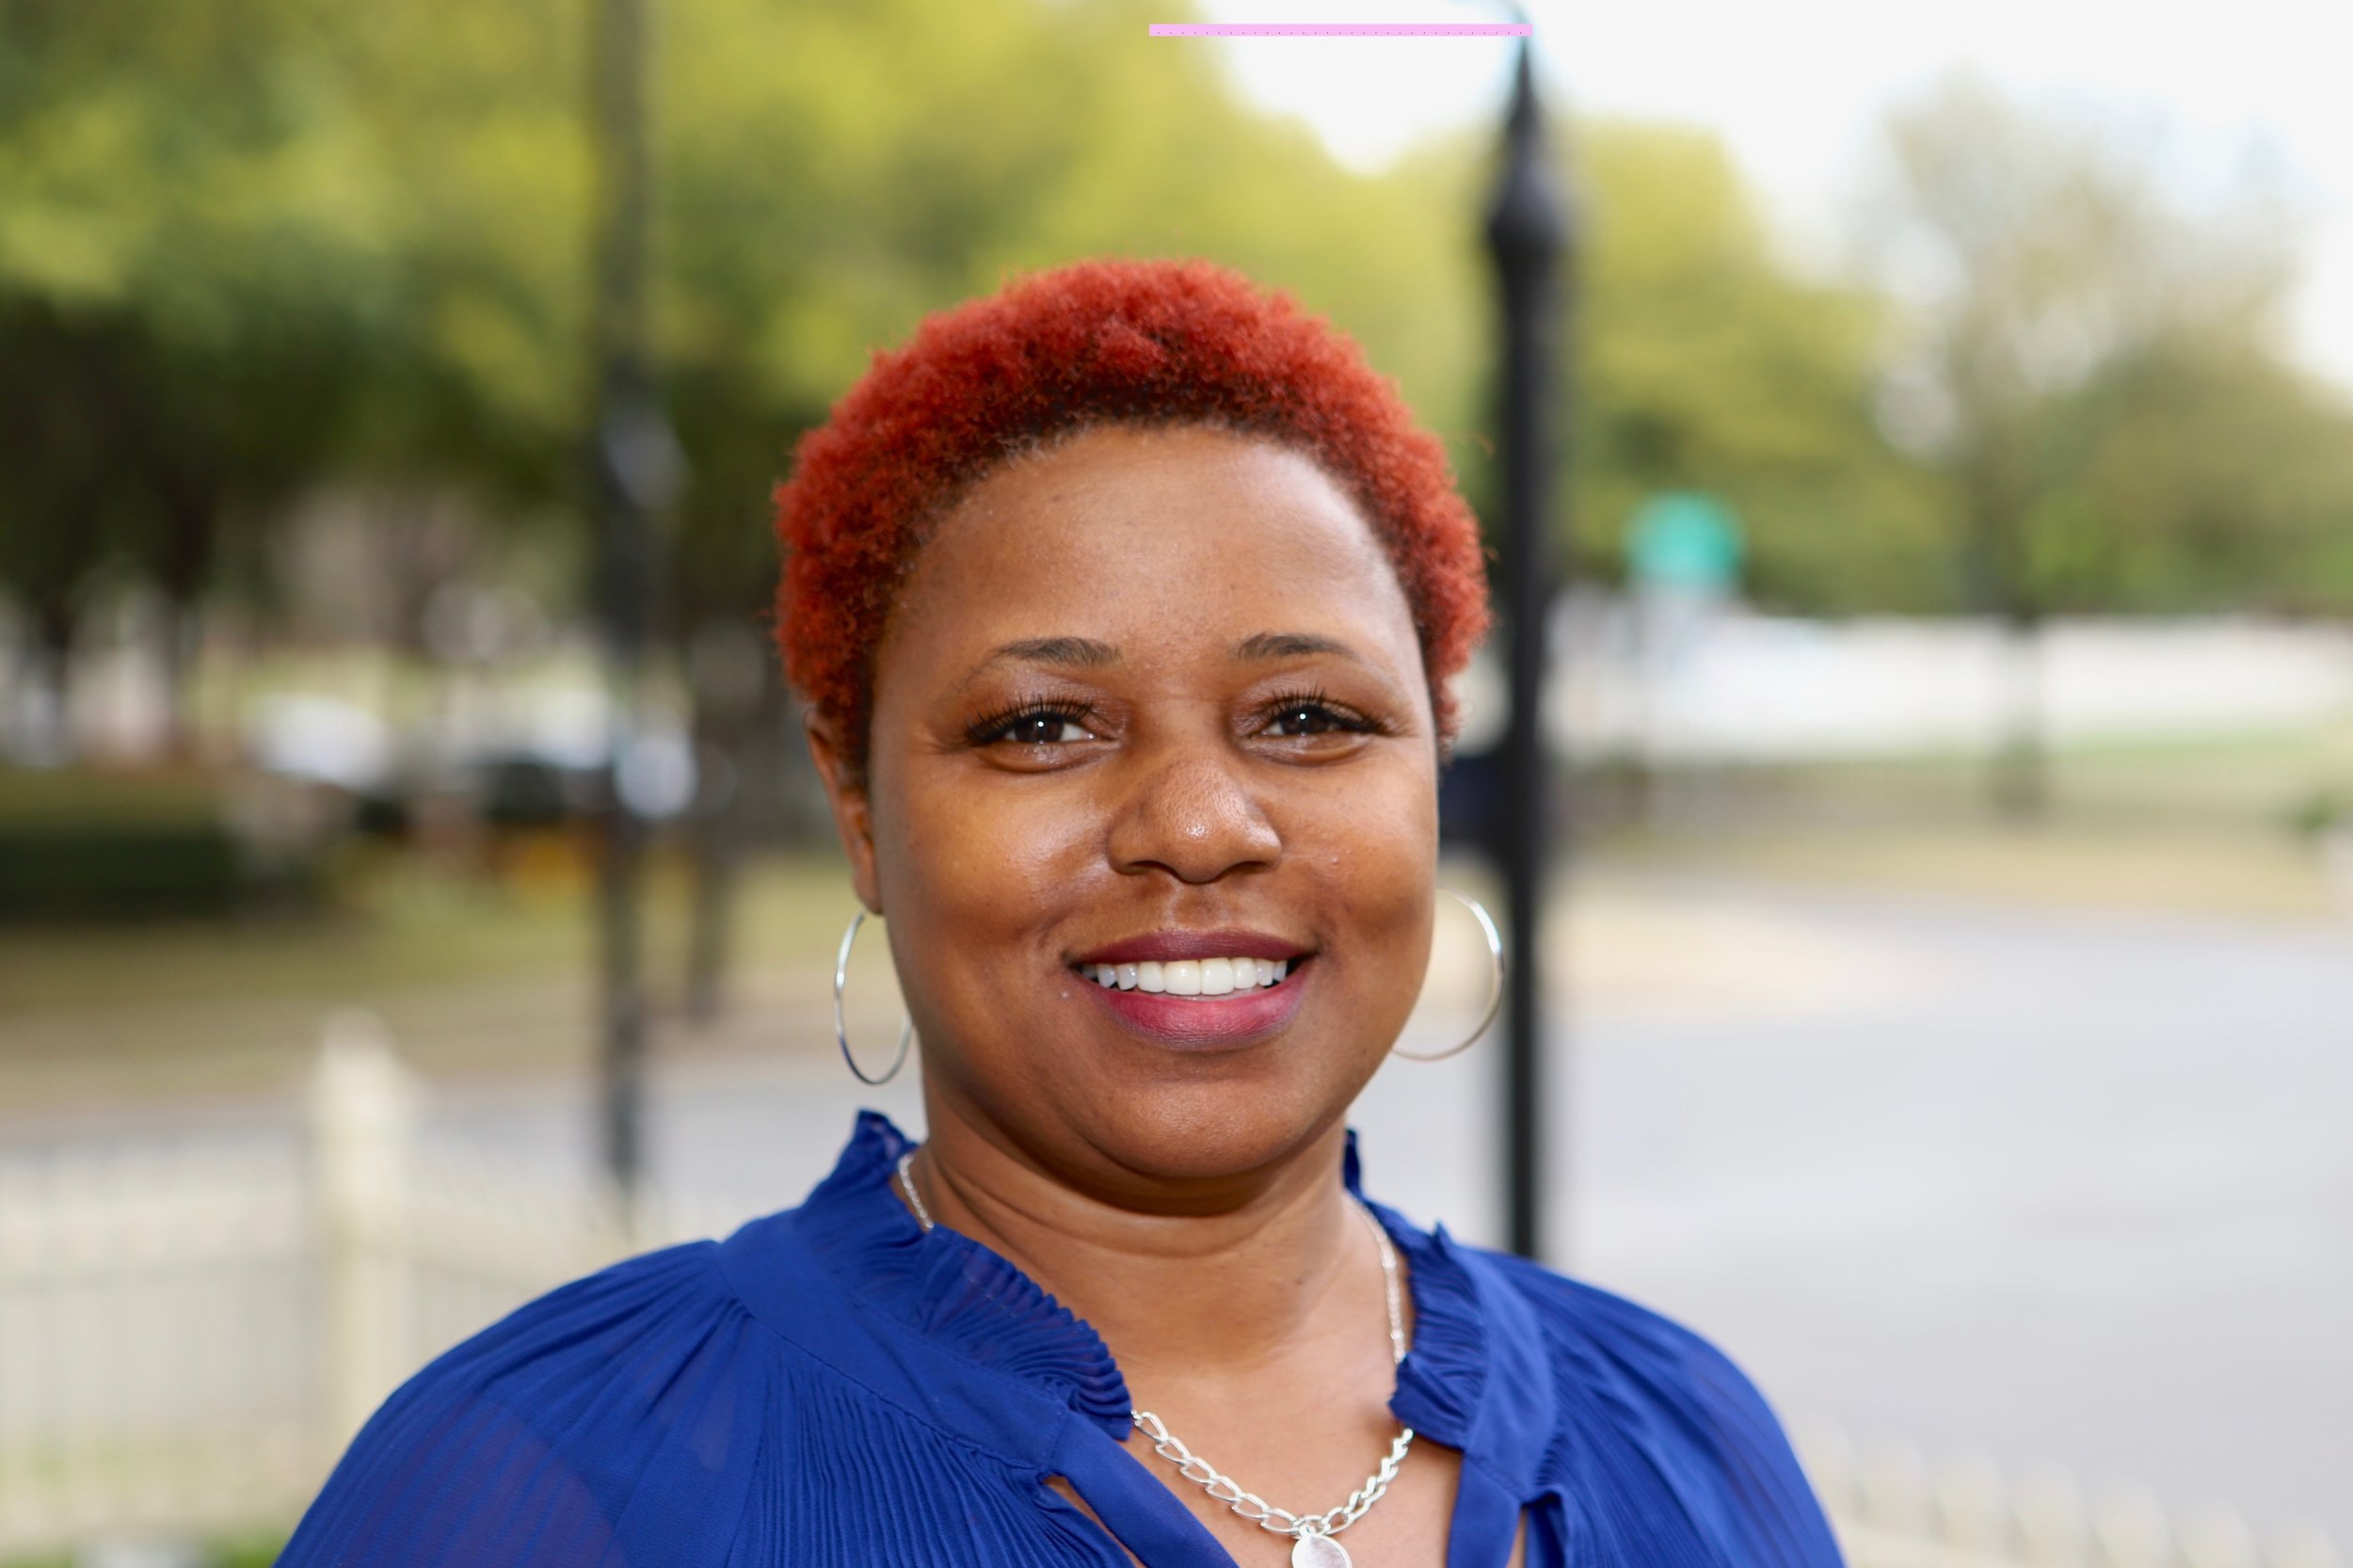 "Kea began working with Behind Every Door in 2014 through our partnership with Big Thought, and then joined the Behind Every Door team in 2015. Kea serves as the Community Director at Village Oaks apartments. Kea graduated from Xavier University of Louisiana with a degree in Business/Marketing and from Southern Methodist University's Perkins School of Theology with a Masters of Divinity. Kea is passionate about discipleship, she is a gifted teacher and speaker, and her mission in life is to ""war a good warfare"" (1 Timothy 1:18). Kea grew up in San Antonio and currently lives in Dallas, Texas."